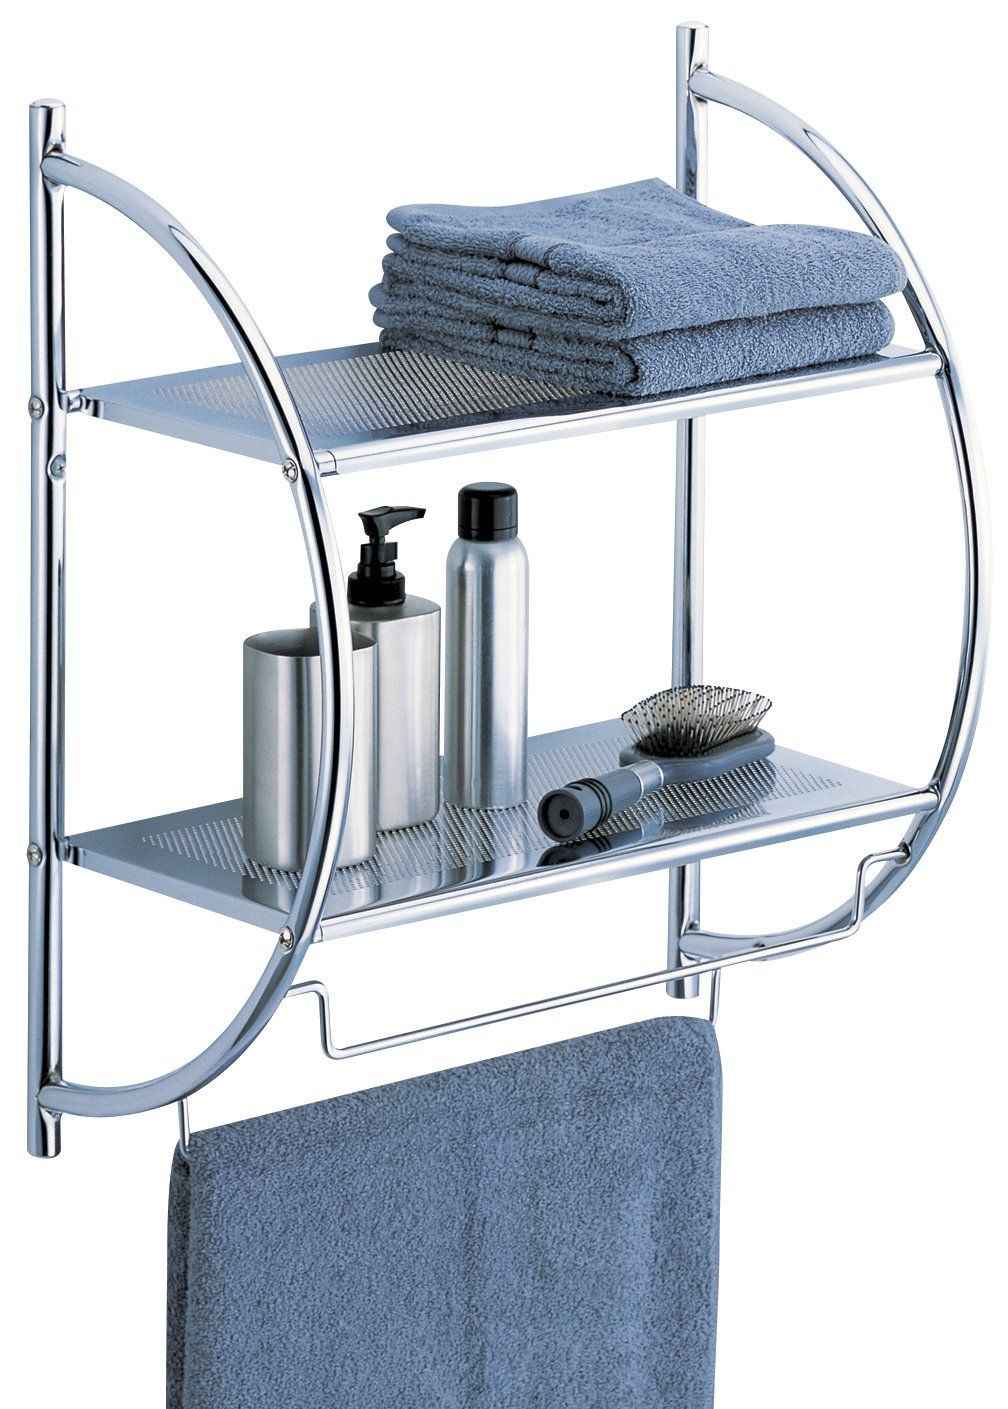 pin by kazuko jennins on bathroom accessory options towel rack rh pinterest com